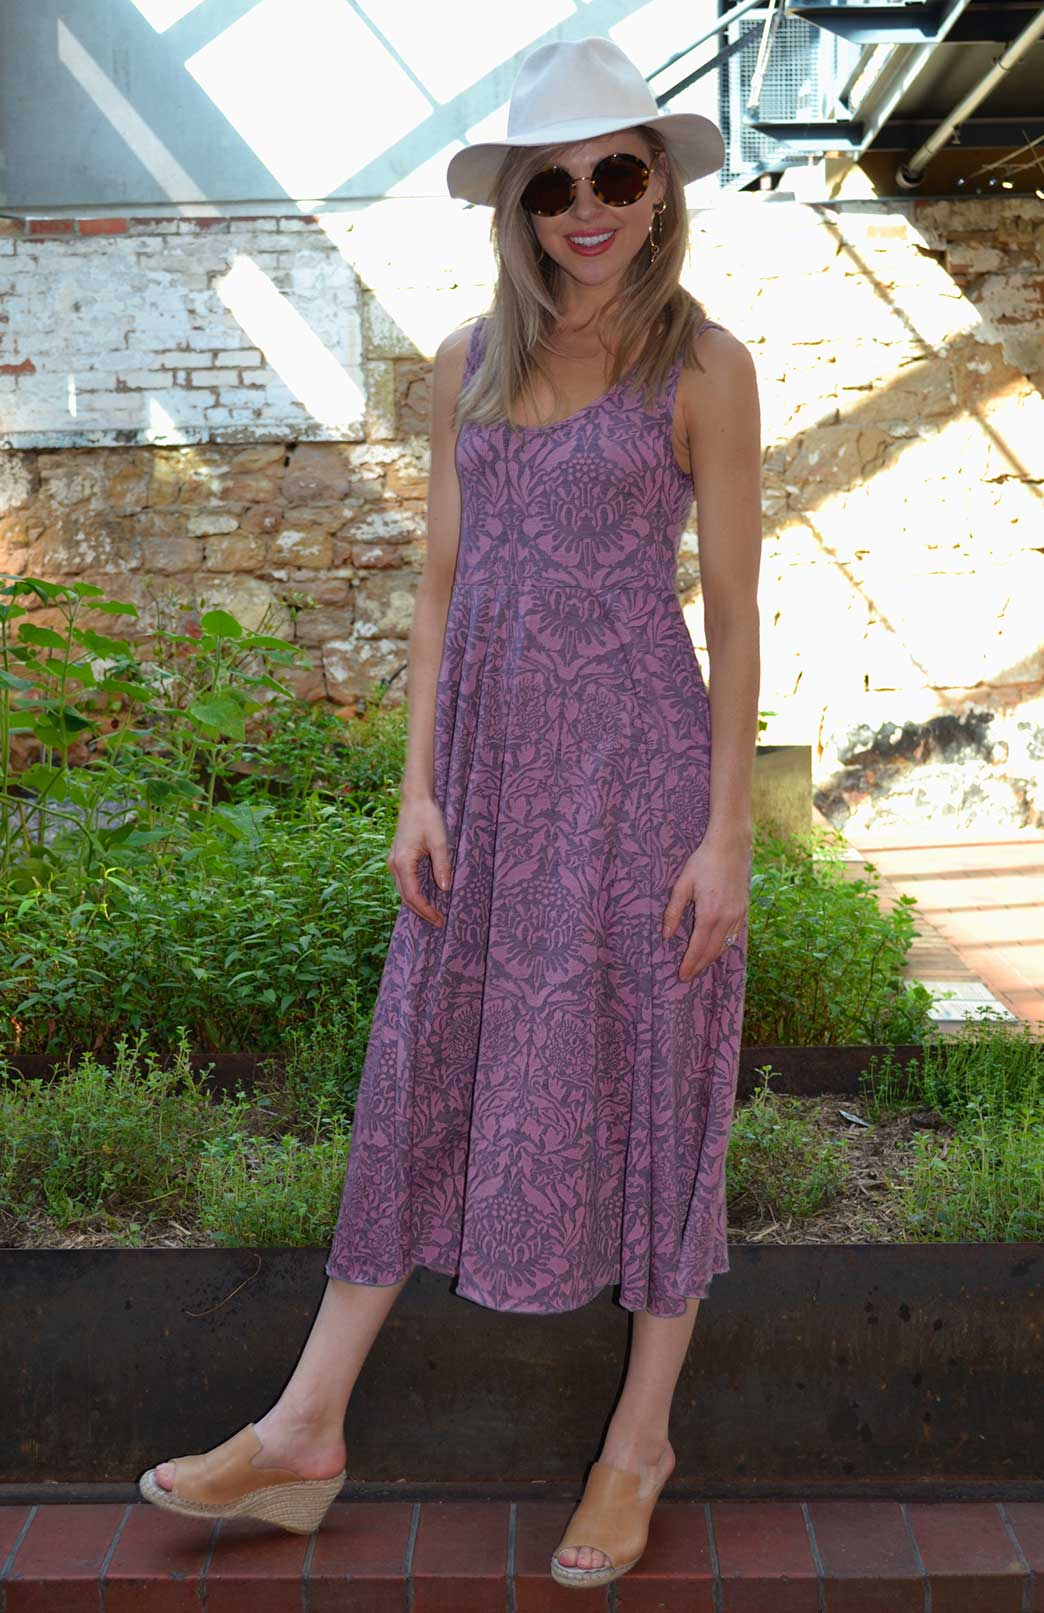 Fan Dress - Patterned Fabric - Women's Pink Floral Woollen Dress with empire waistline - Smitten Merino Tasmania Australia